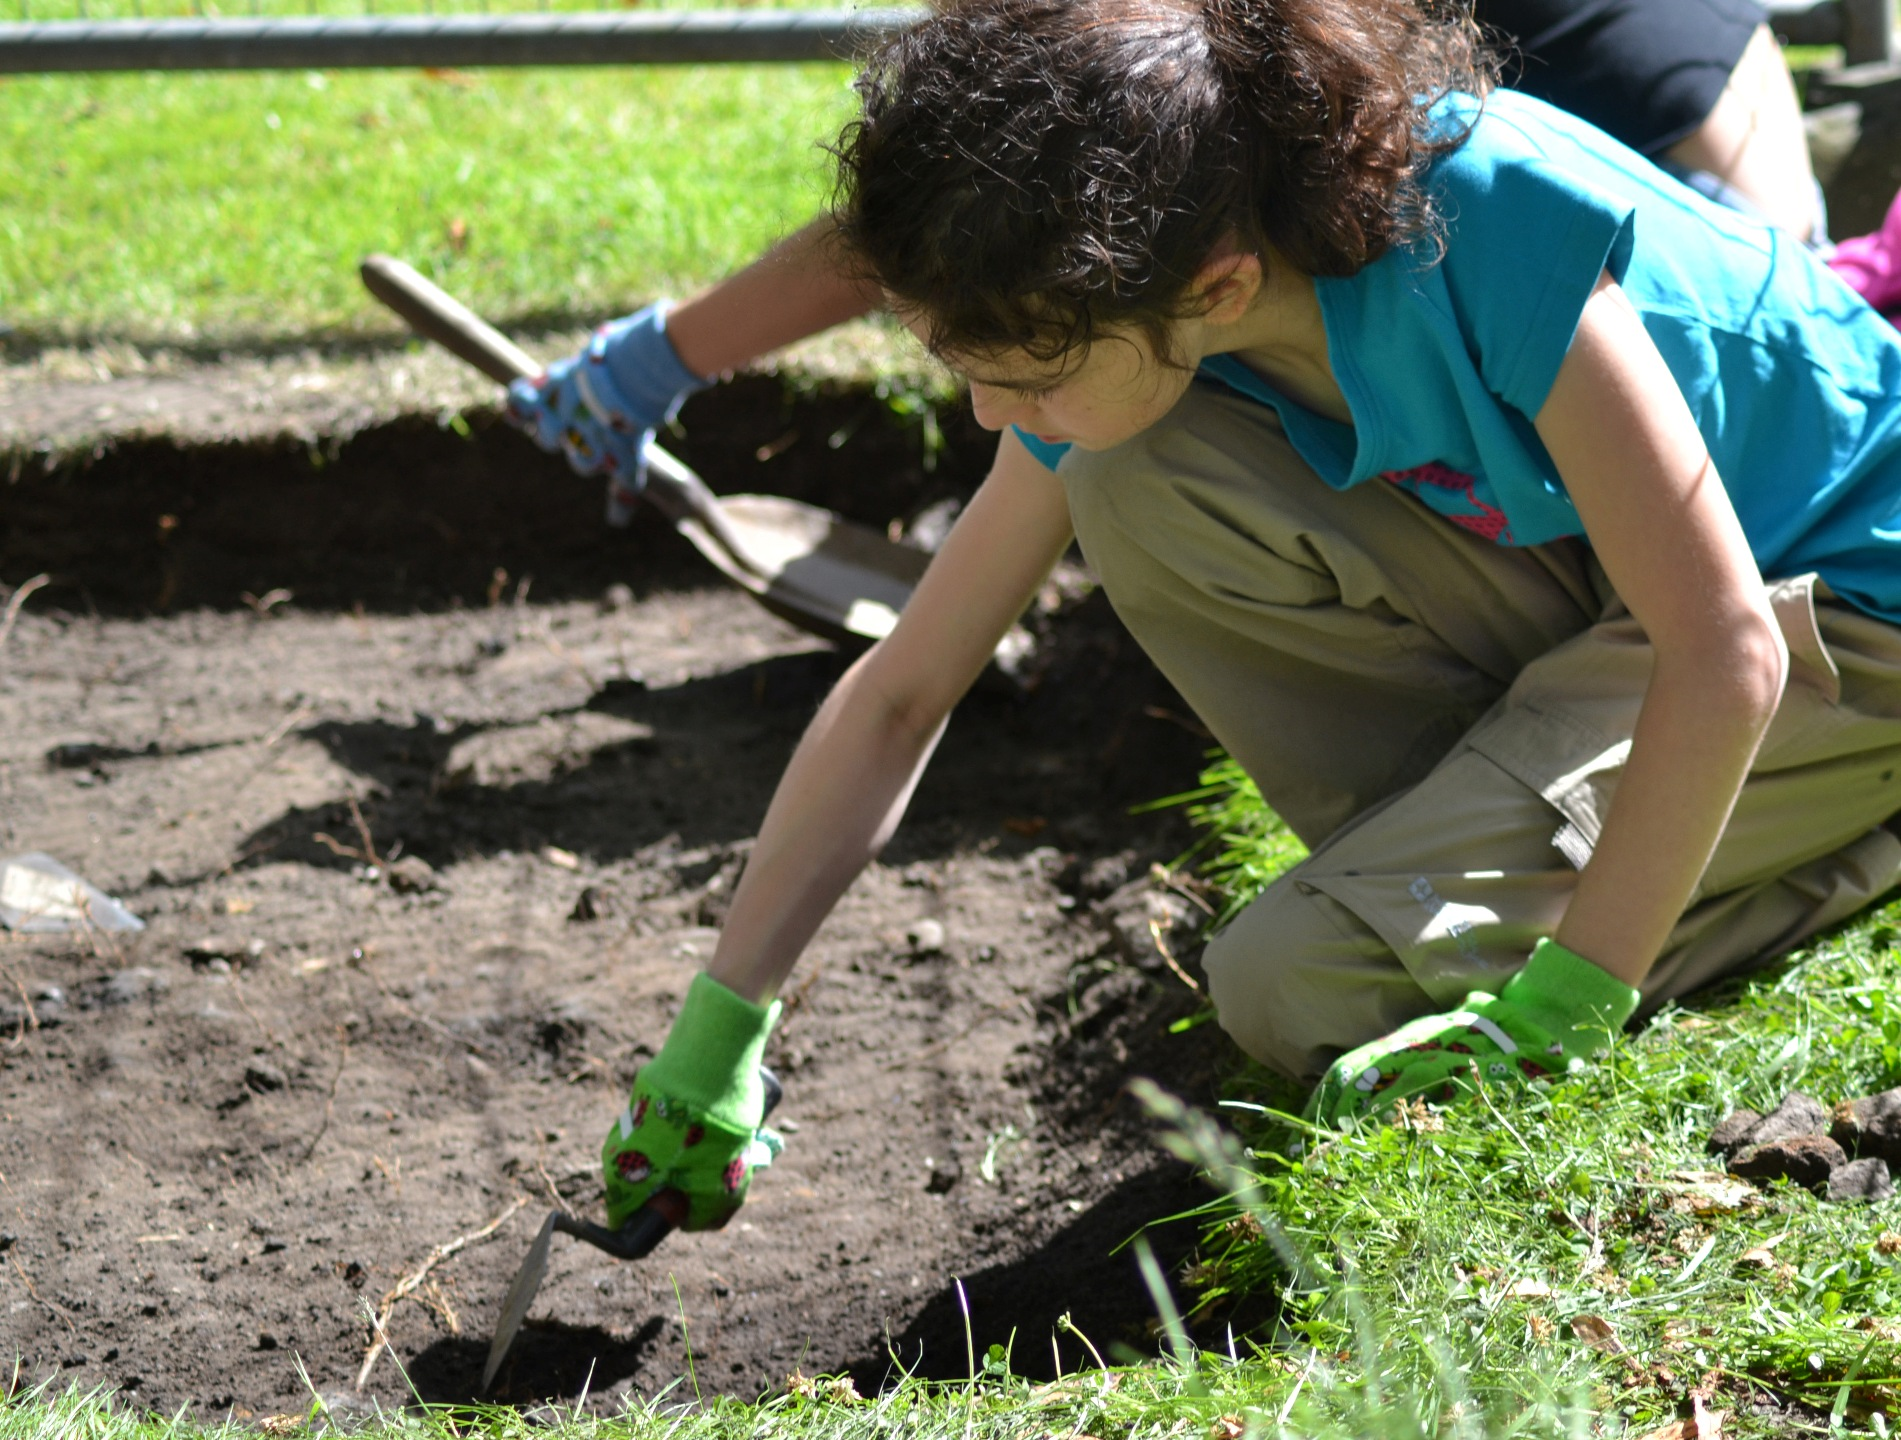 A photograph of a young girl with green gloves digging in a shallow trench with a trowel